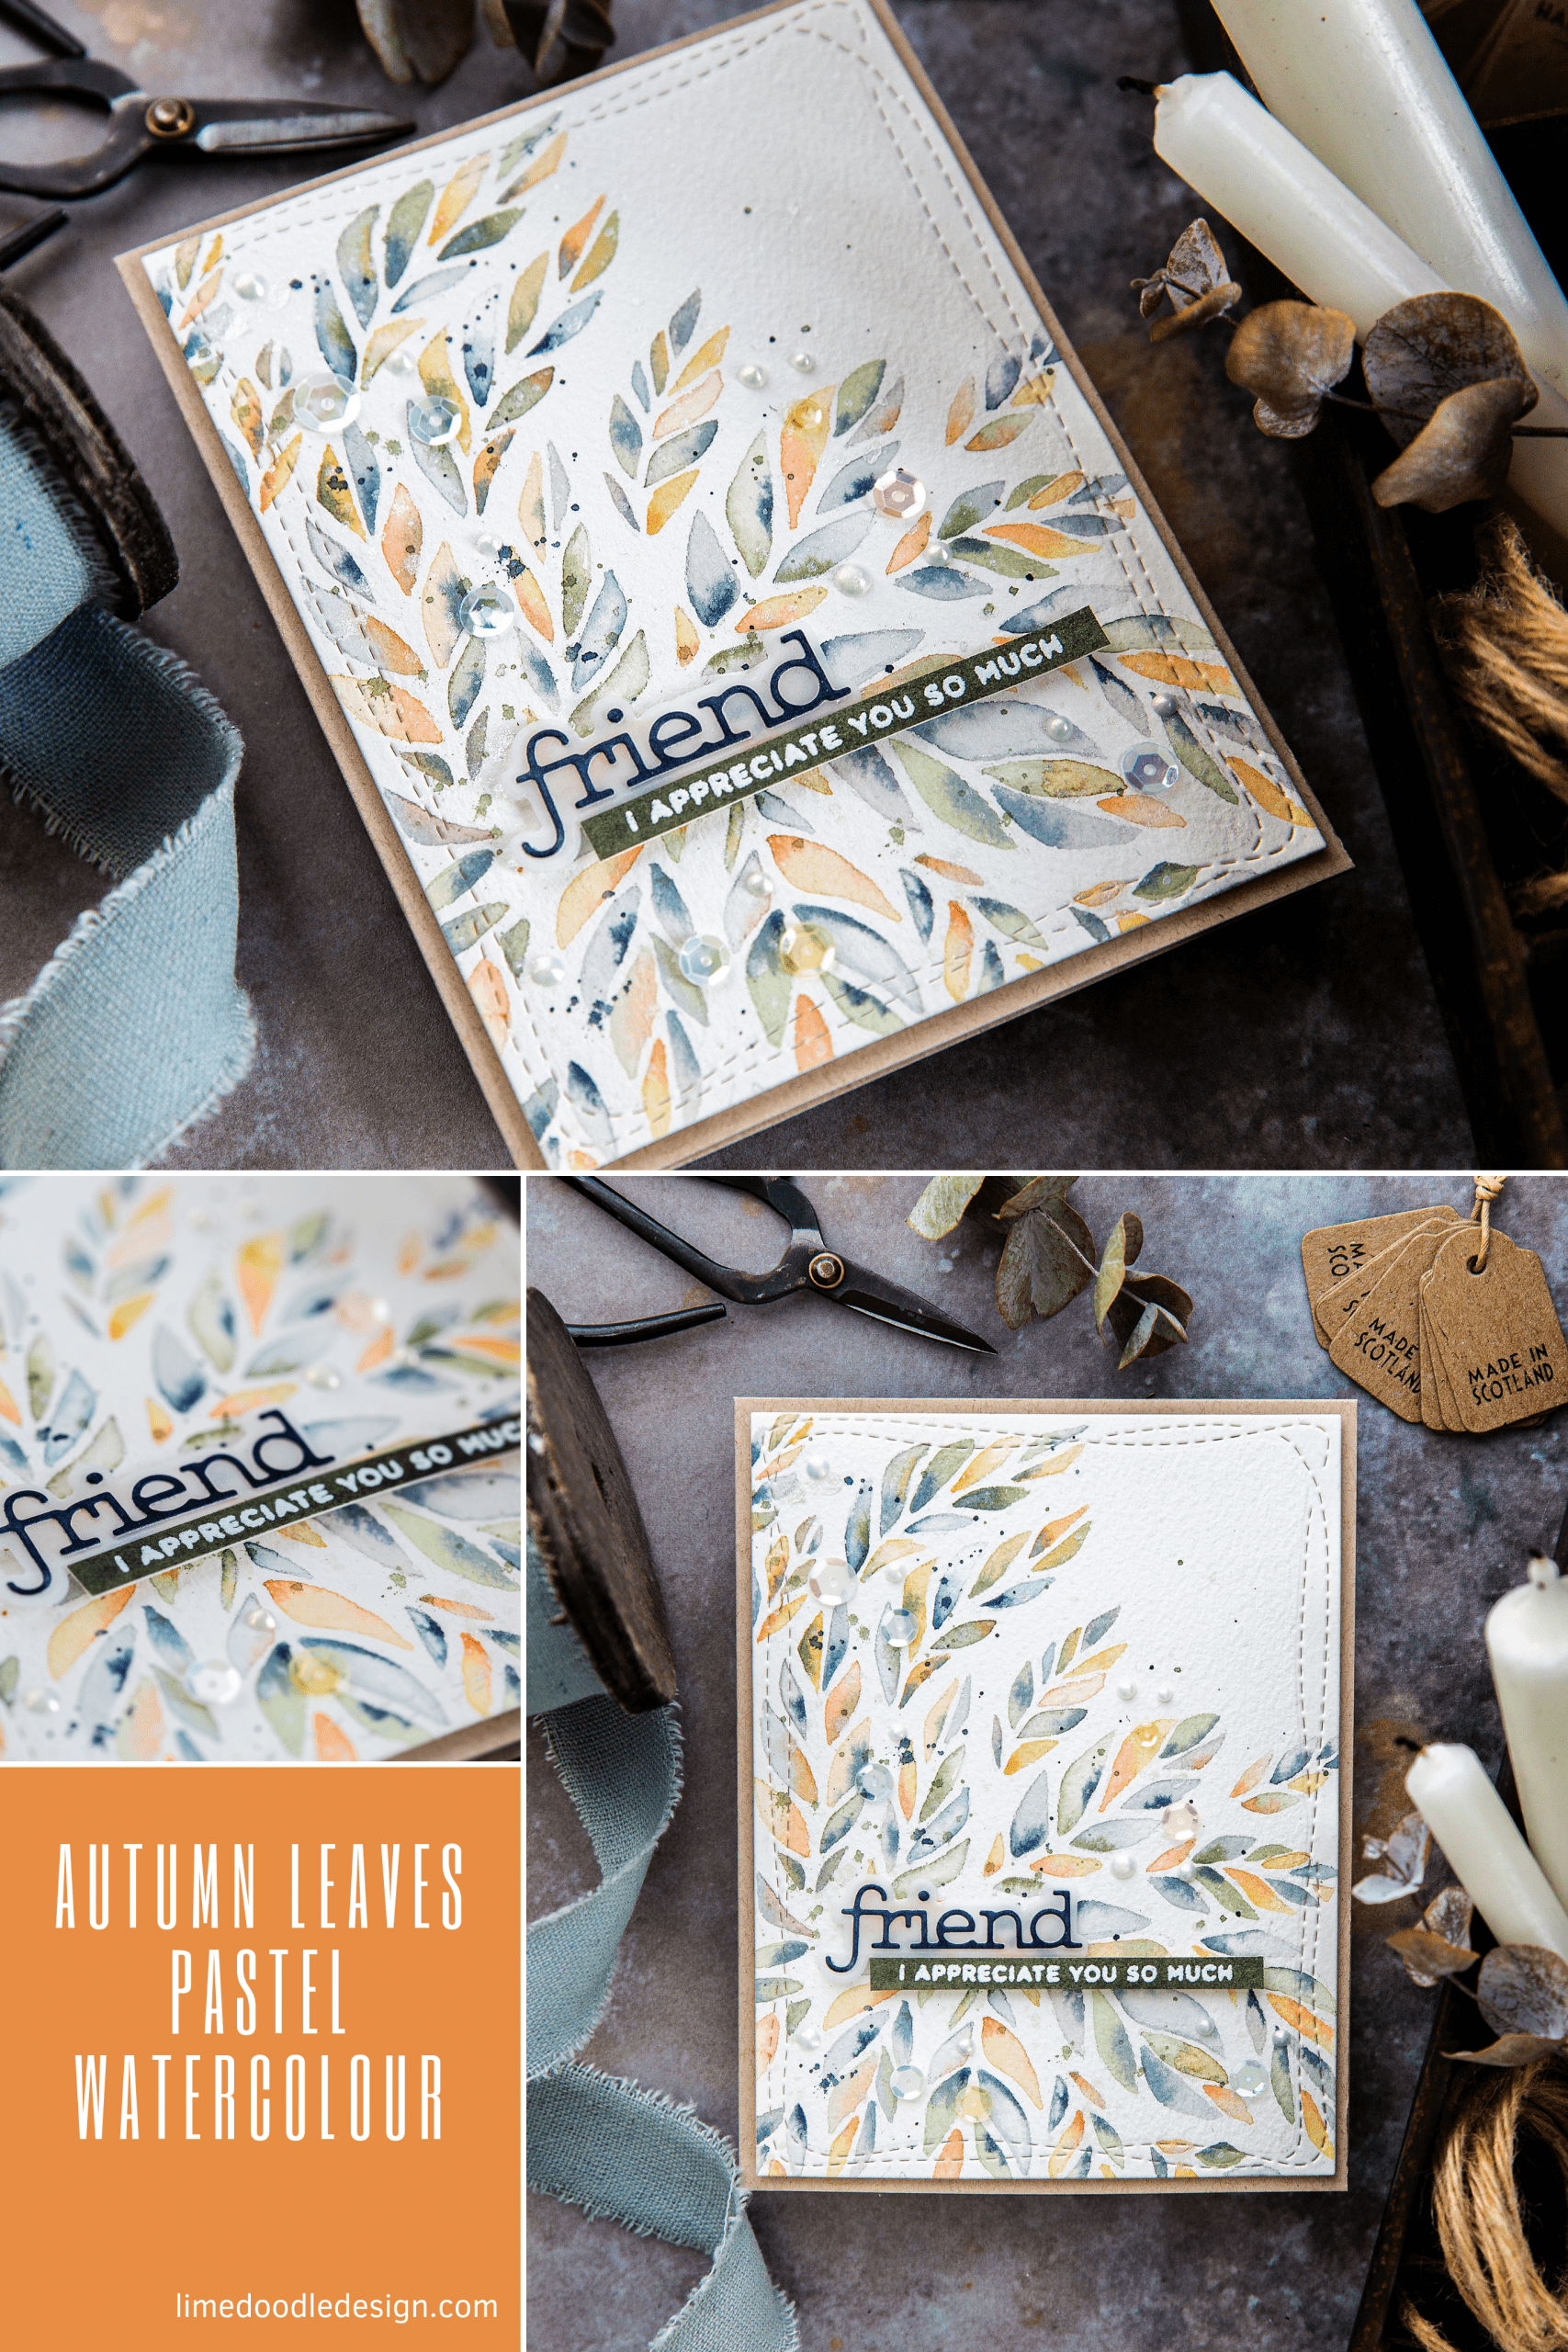 Autumn leaves pastel watercoloured friendship card by Debby Hughes using supplies from Simon Says Stamp. Find out more here: https://limedoodledesign.com/2019/09/autumn-pastels-simon-says-stamp-new-release/